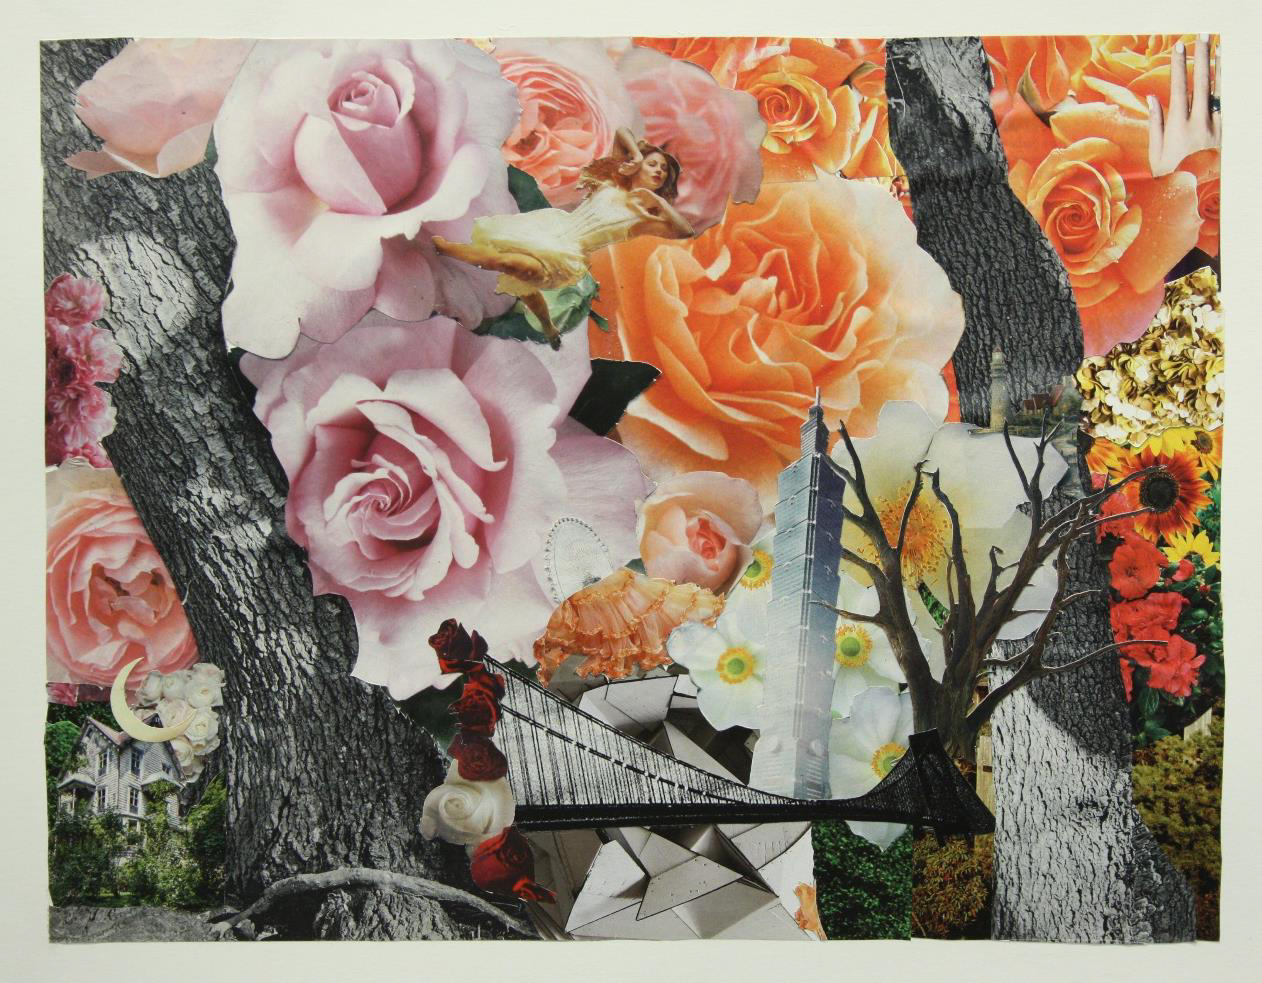 Collage of flowers, trees, bridge, building, and an old house.